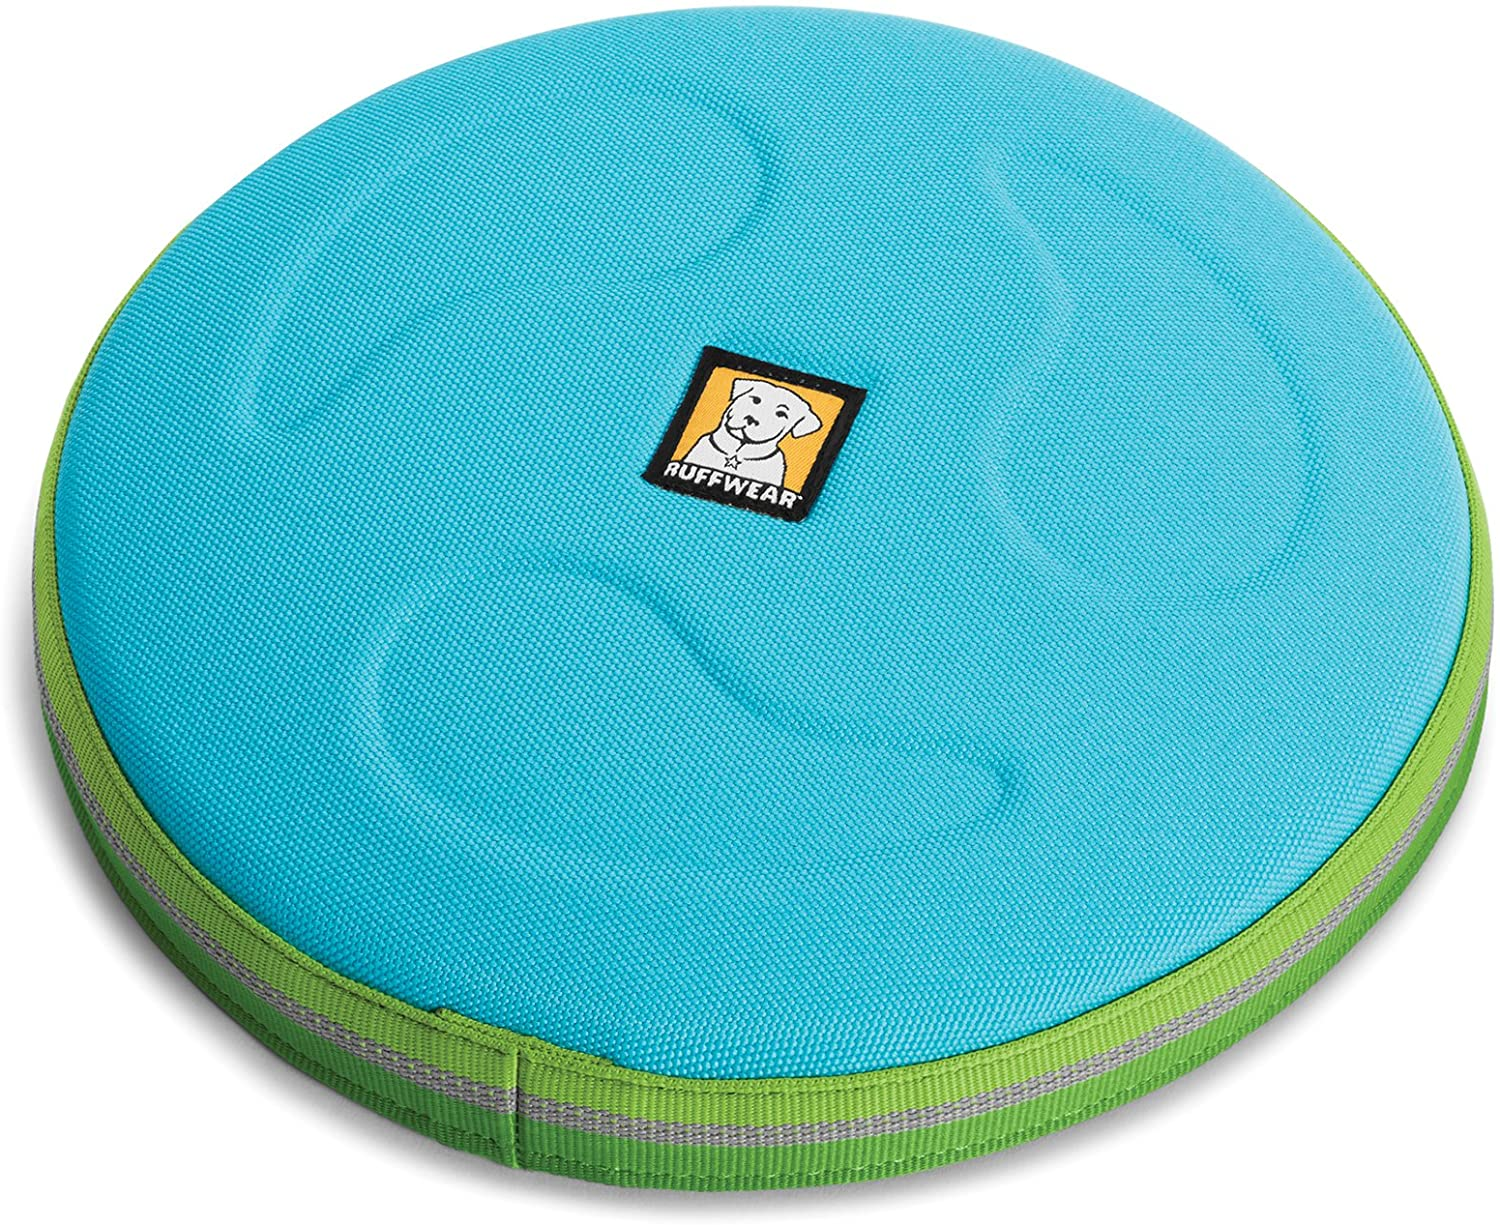 RUFFWEAR - Hover Craft Flying Disc